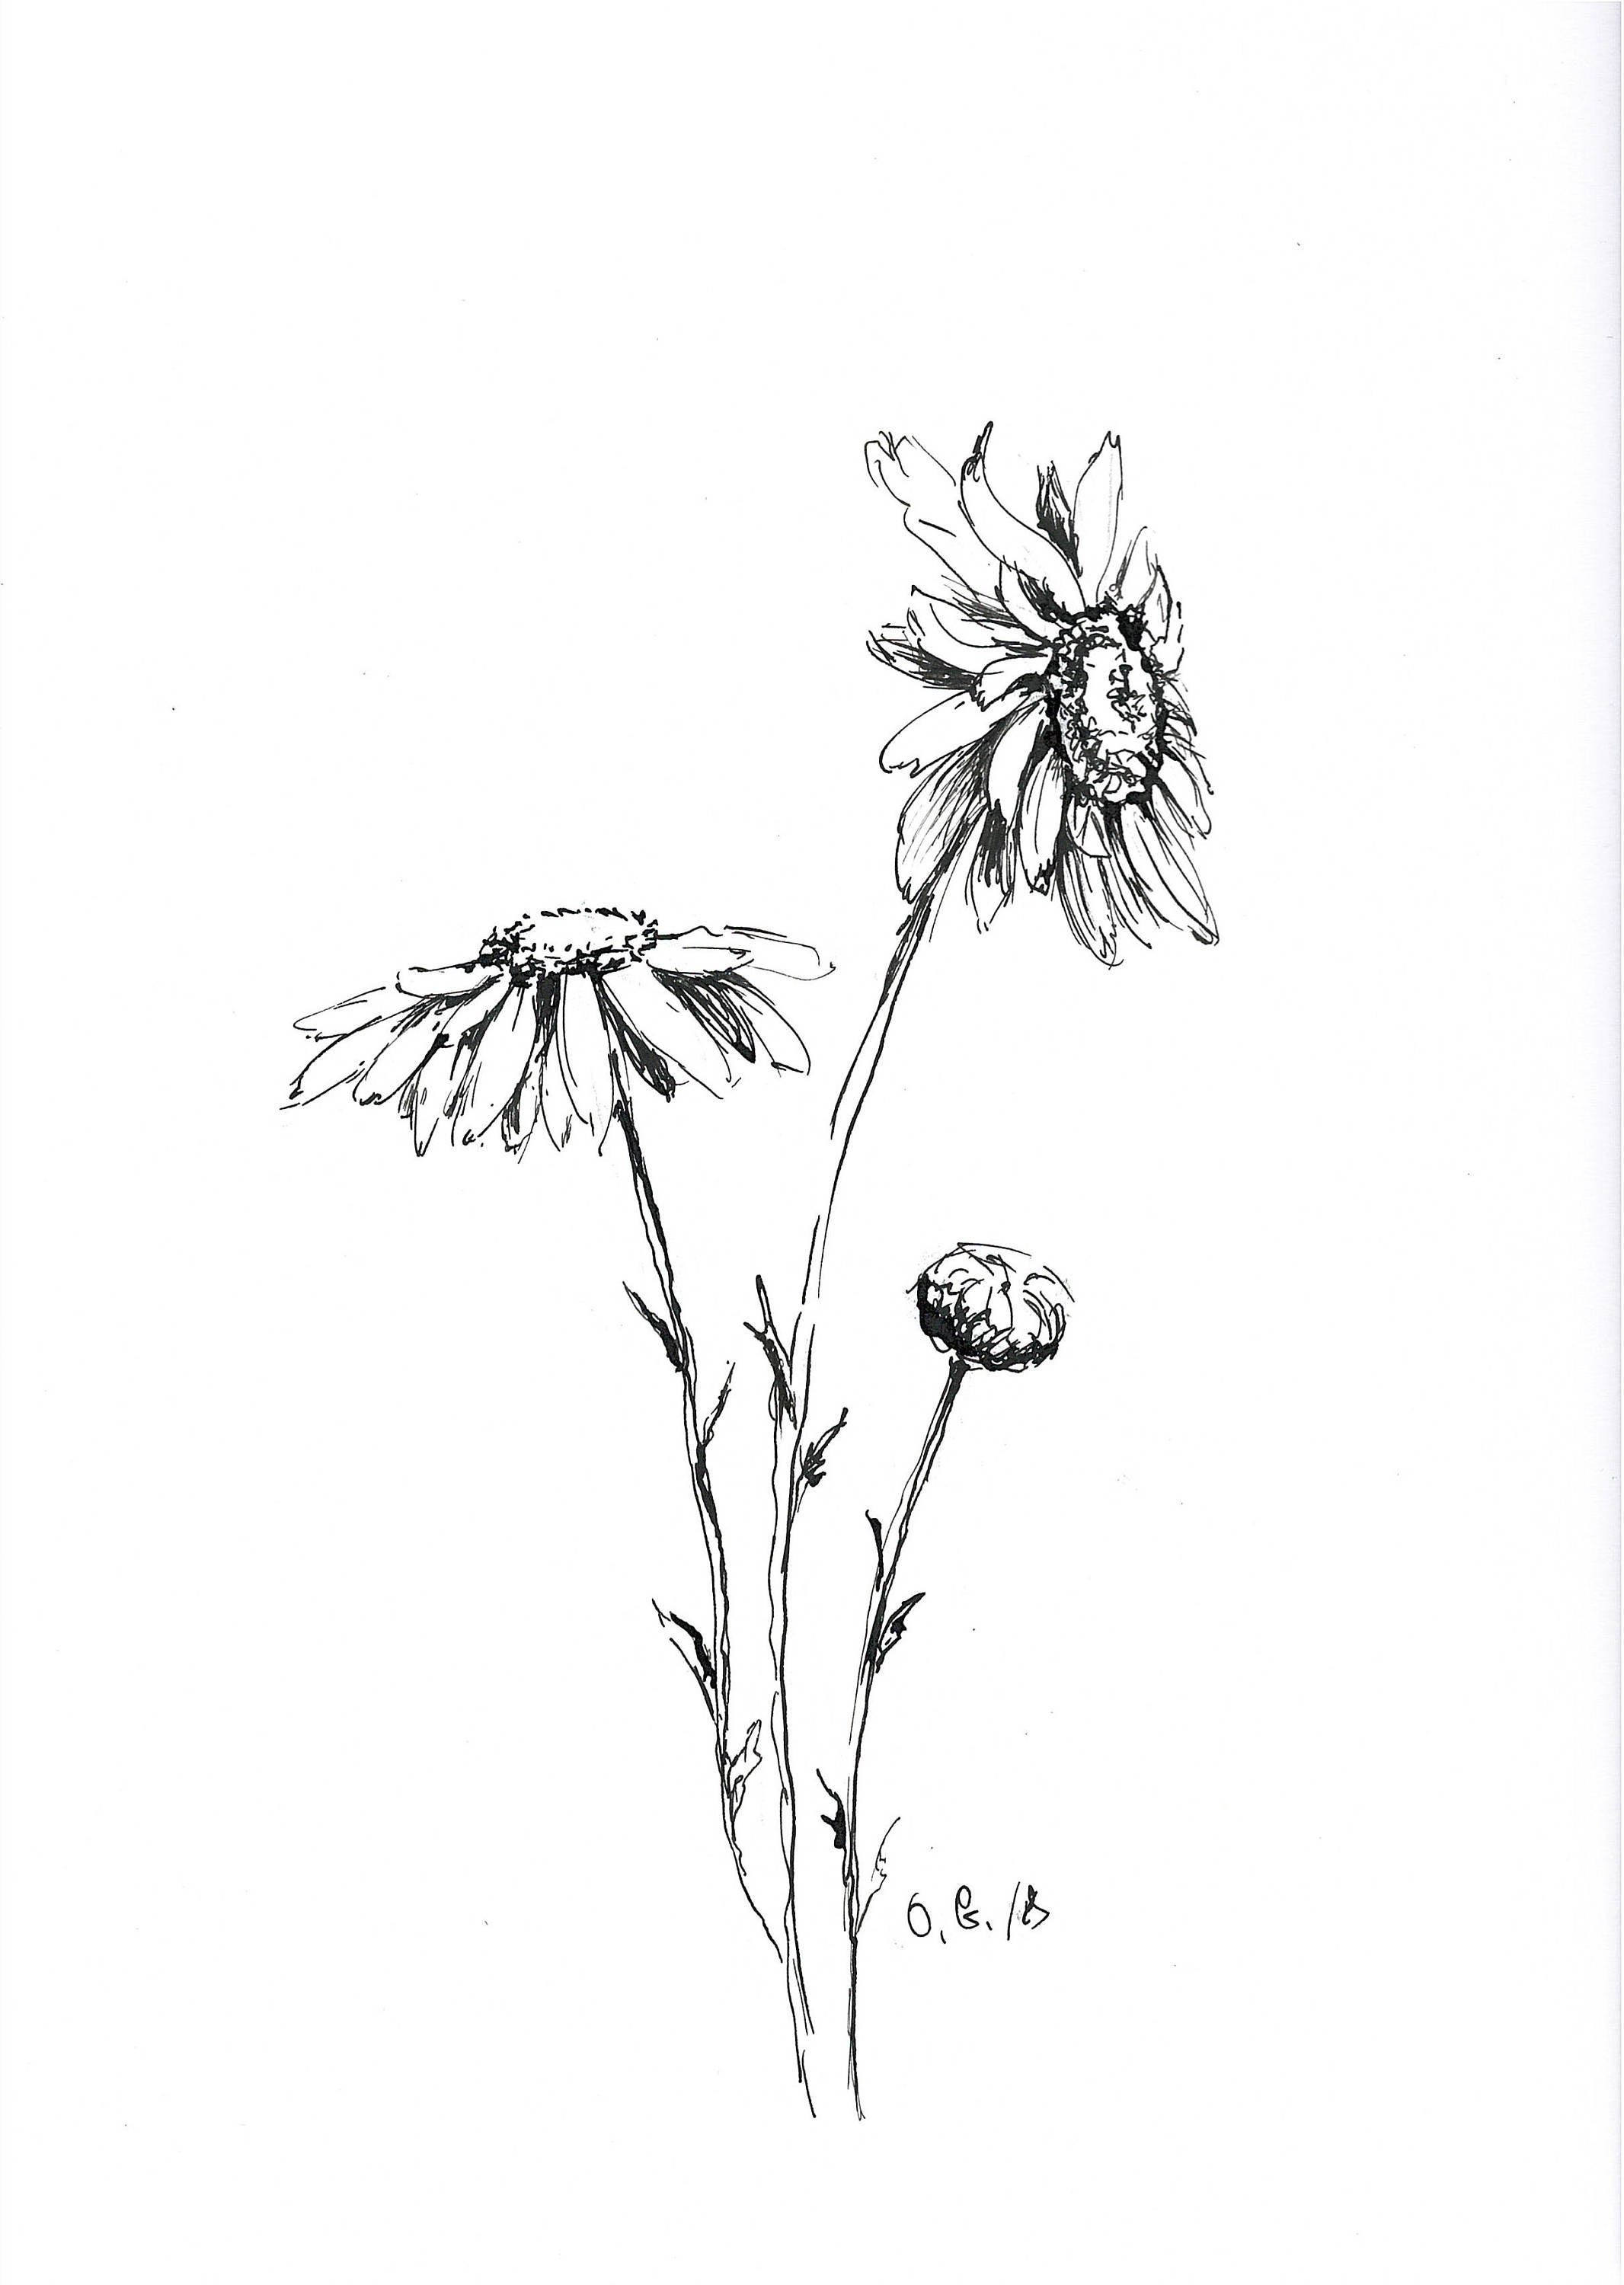 Daisy Drawing Pen And Ink Sketch Daisy Illustration Black Etsy